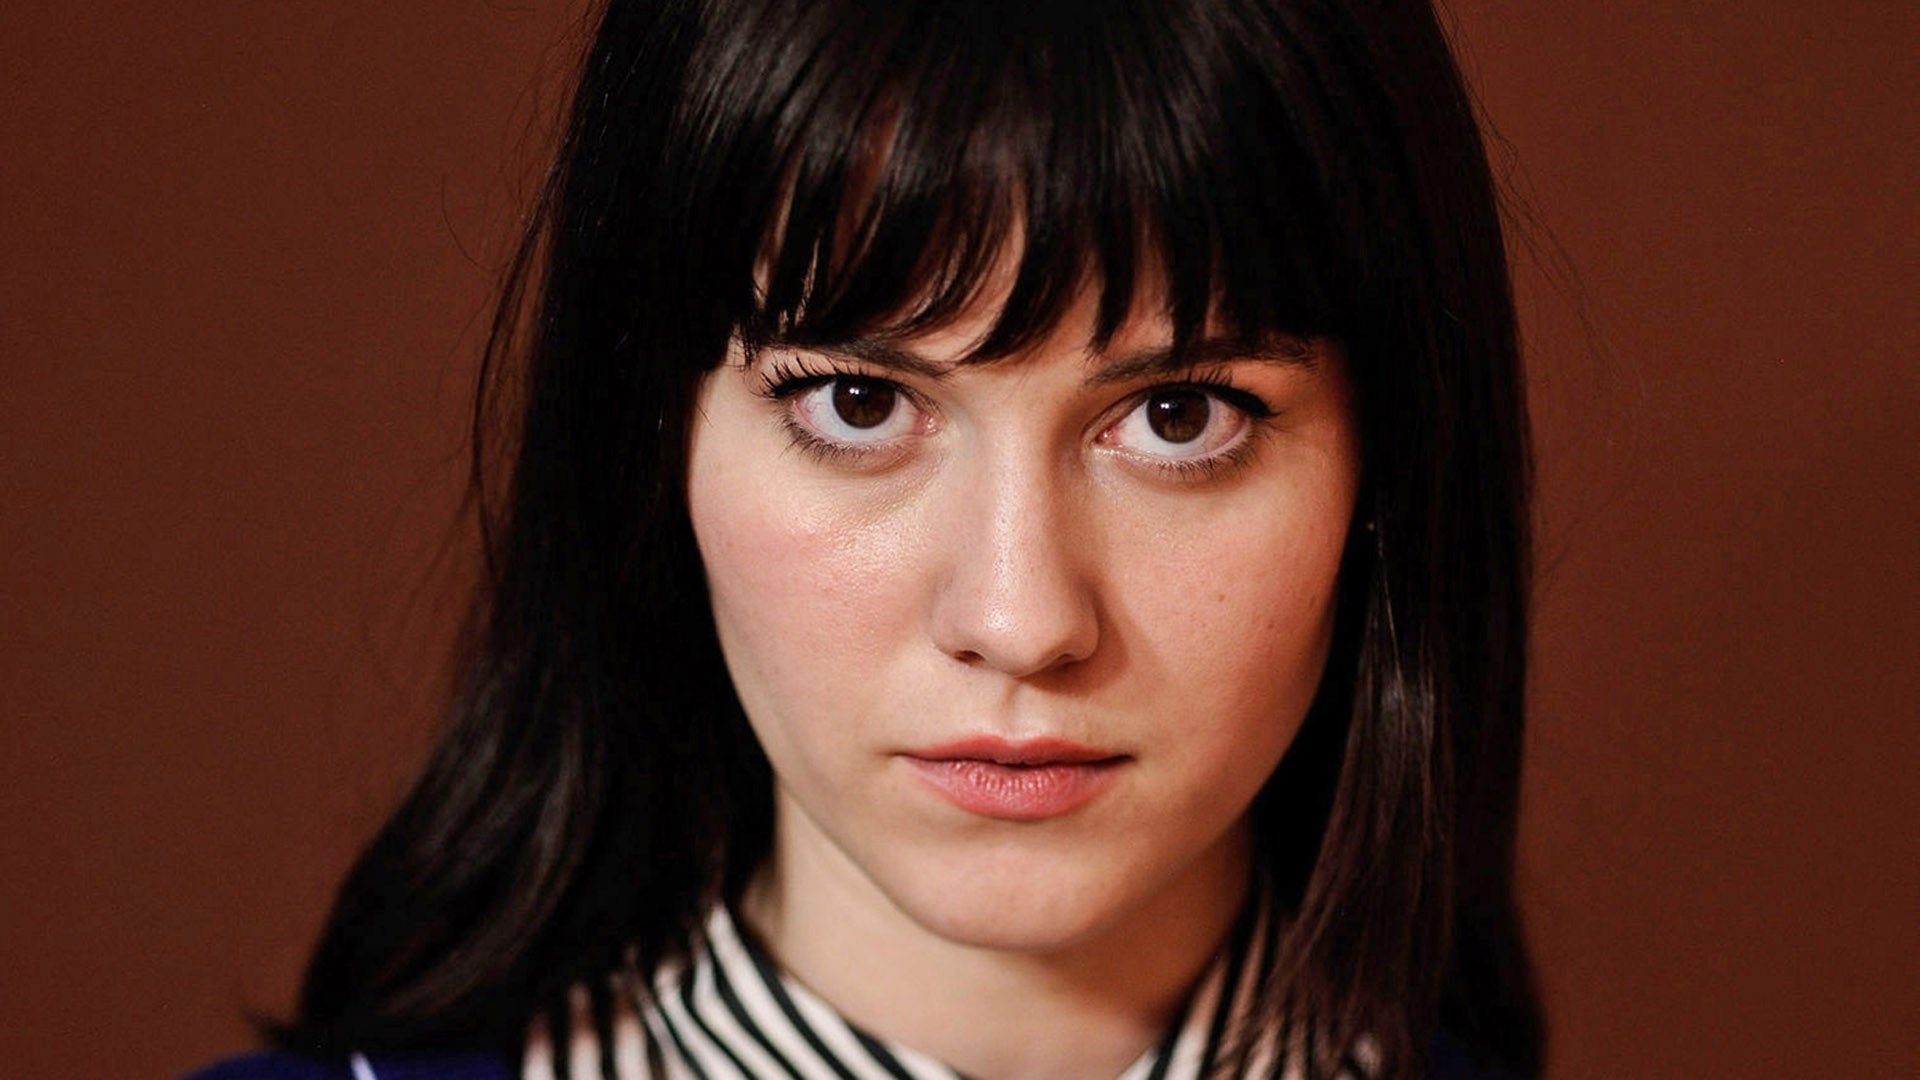 Awesome Amazing Wallpaper Mary Elizabeth Winstead In High